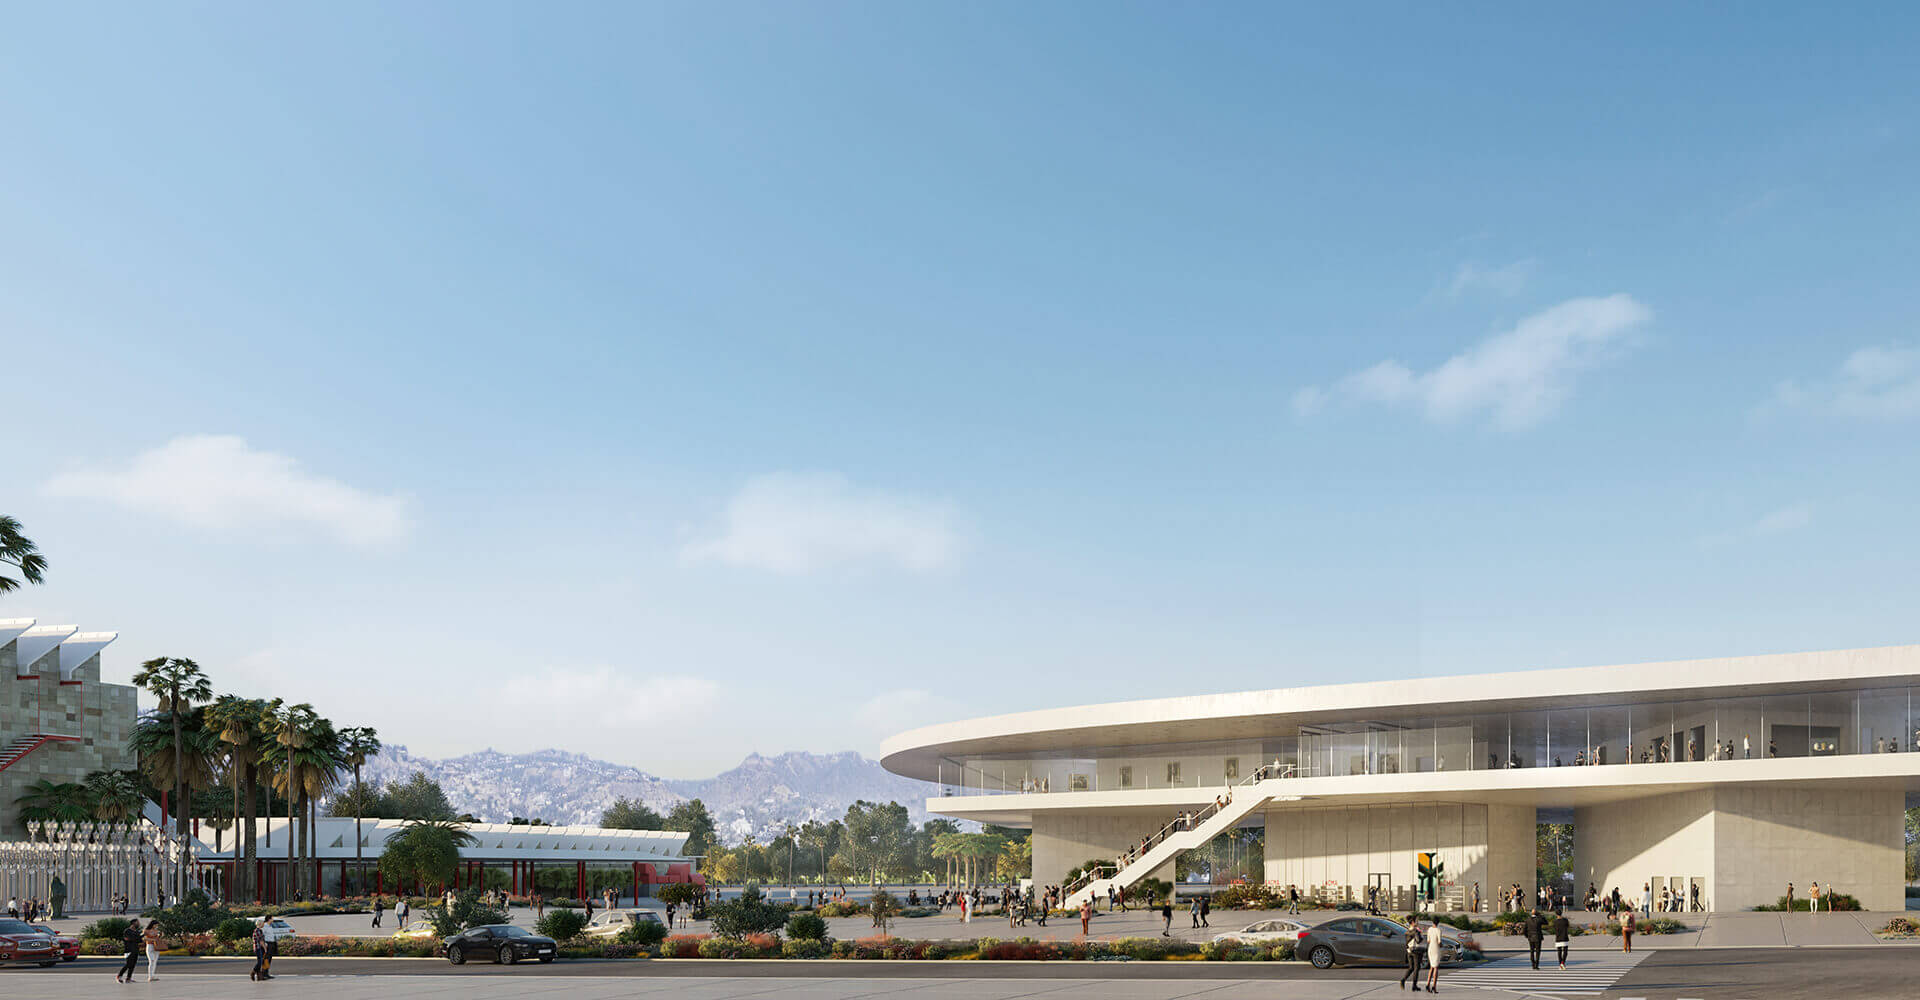 County unanimously approves $117M for contested LACMA redesign